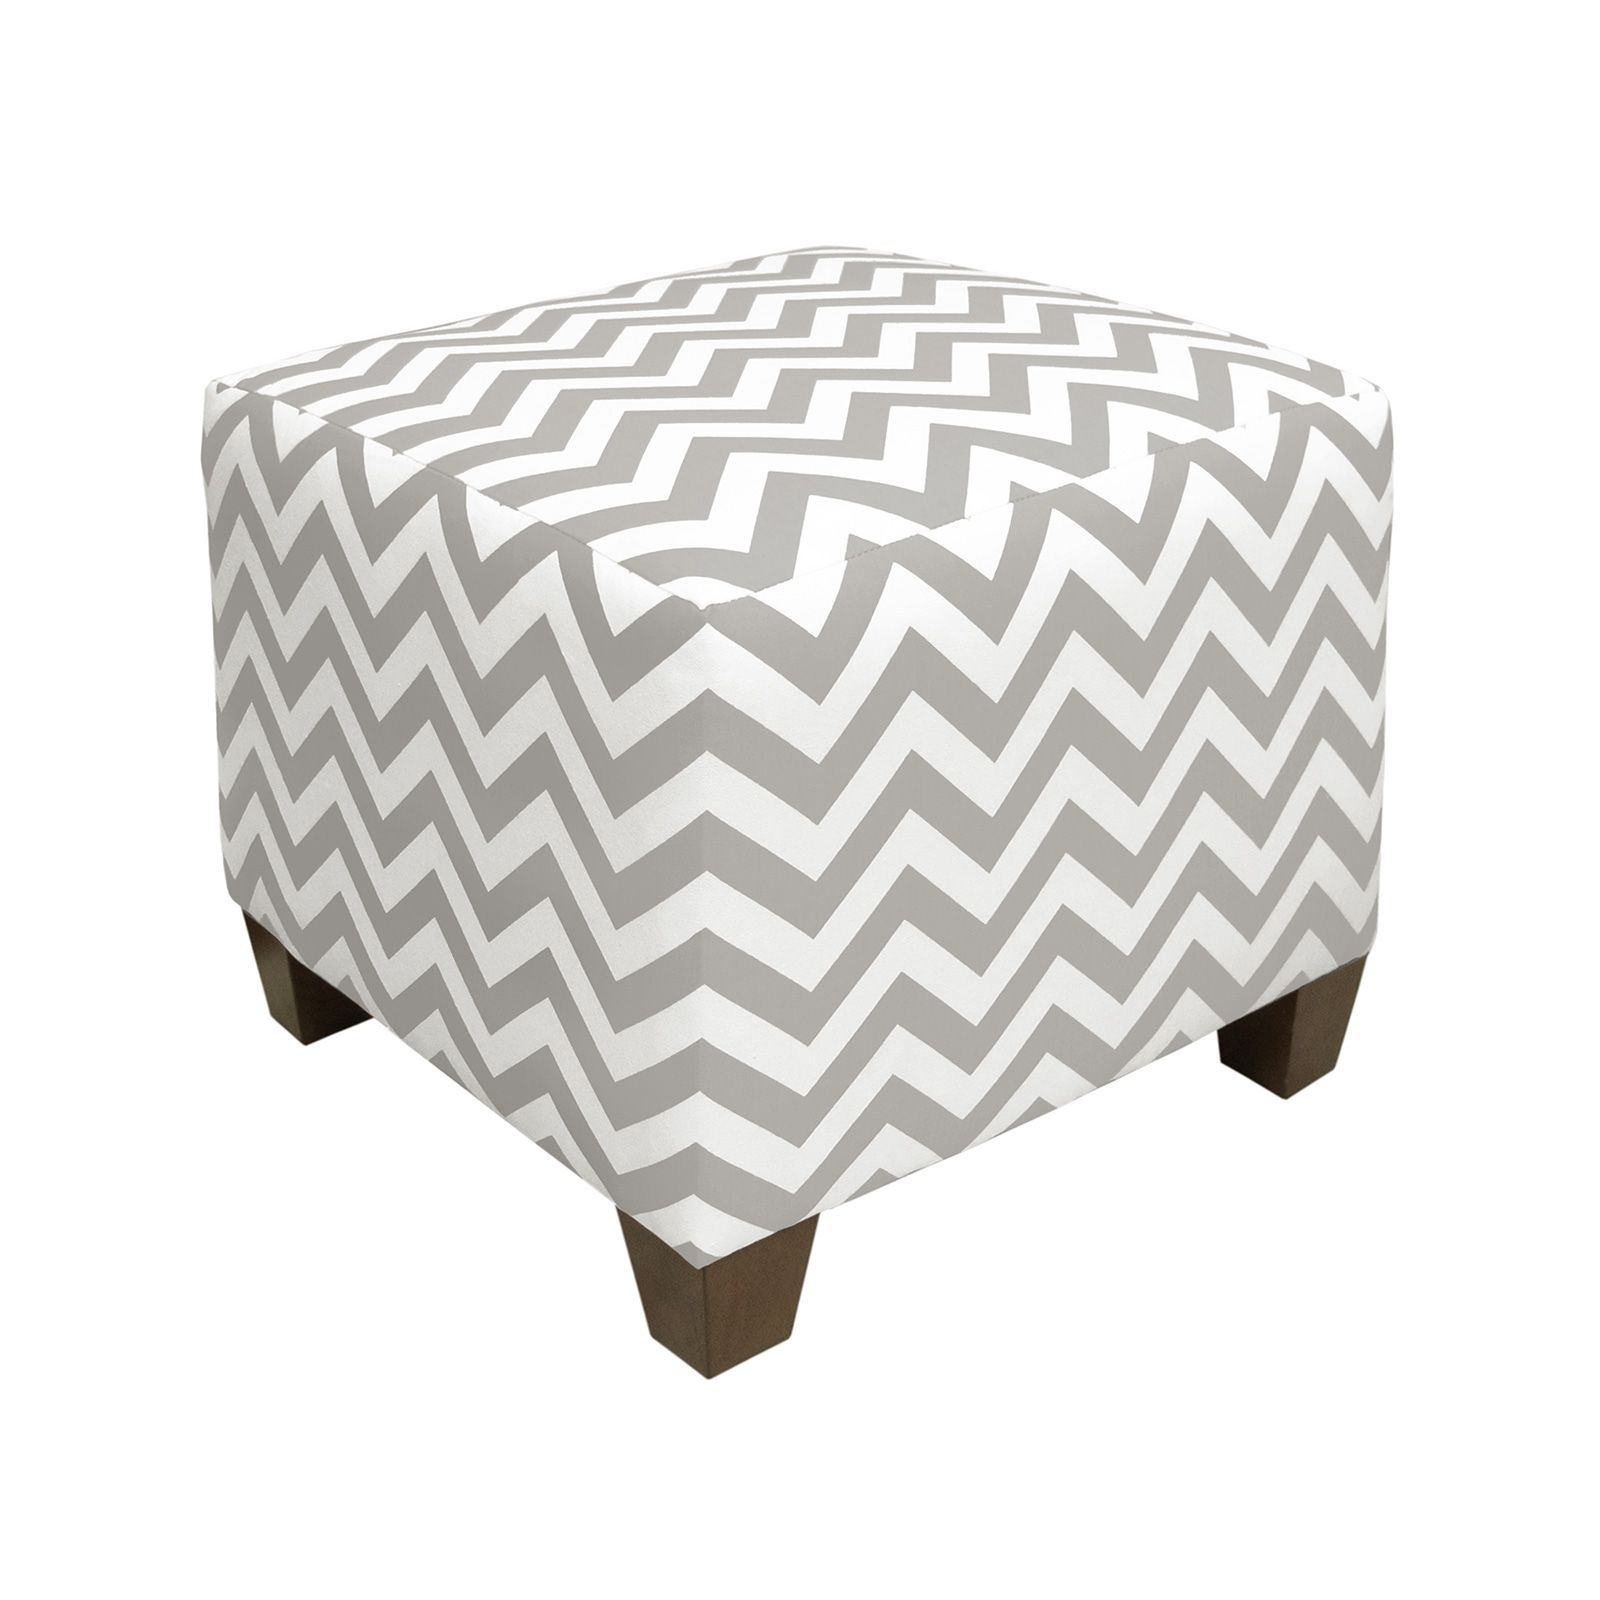 Pin By Kaylee Vasquez On Decor Ideas Square Ottoman